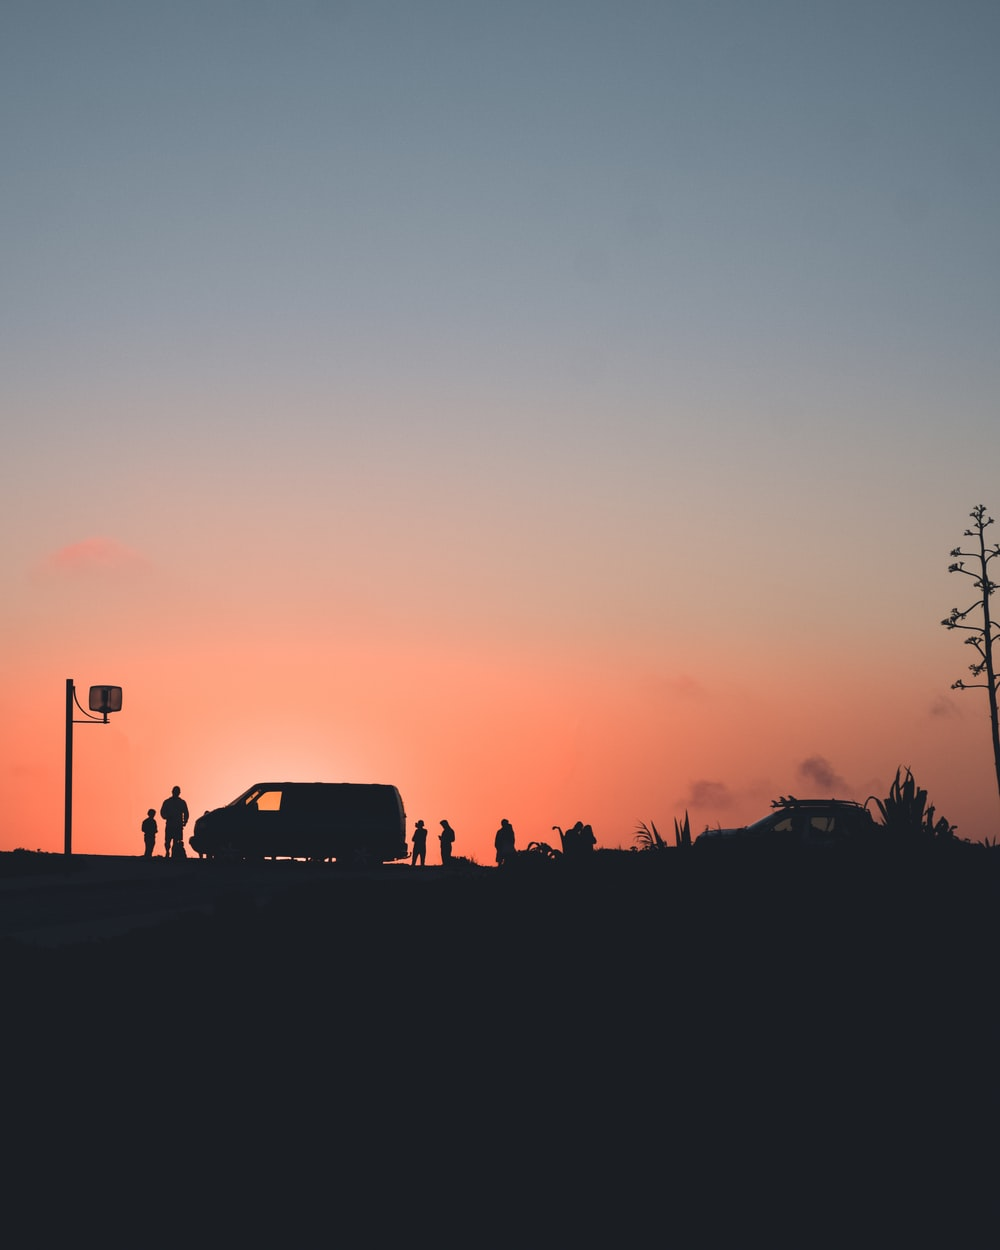 silhouette photo of people gathering outside vehicle